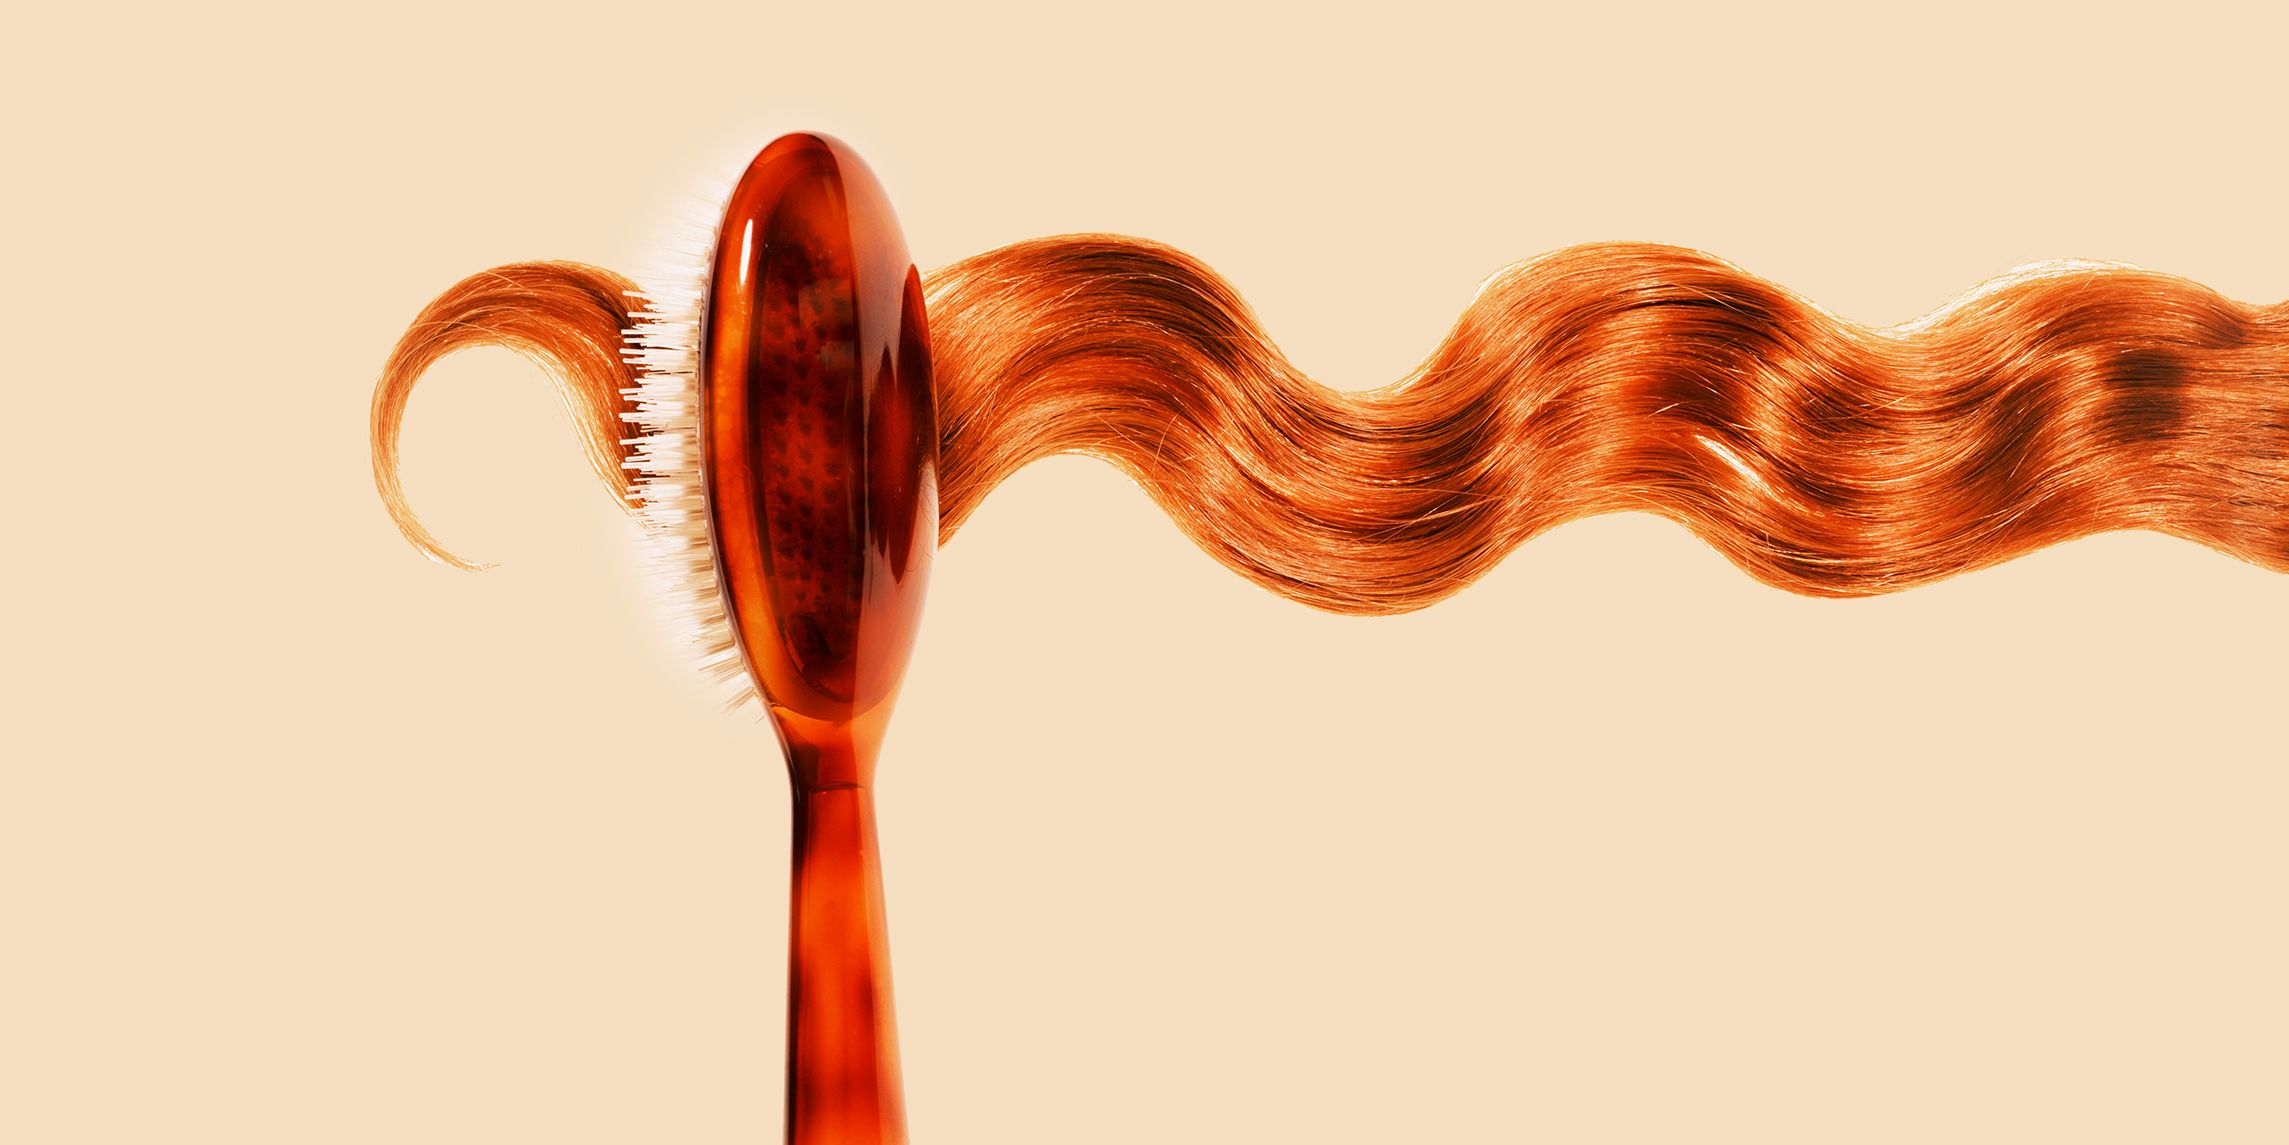 How To Make Your Hair Grow Faster 10 Quick Hair Growth Tips